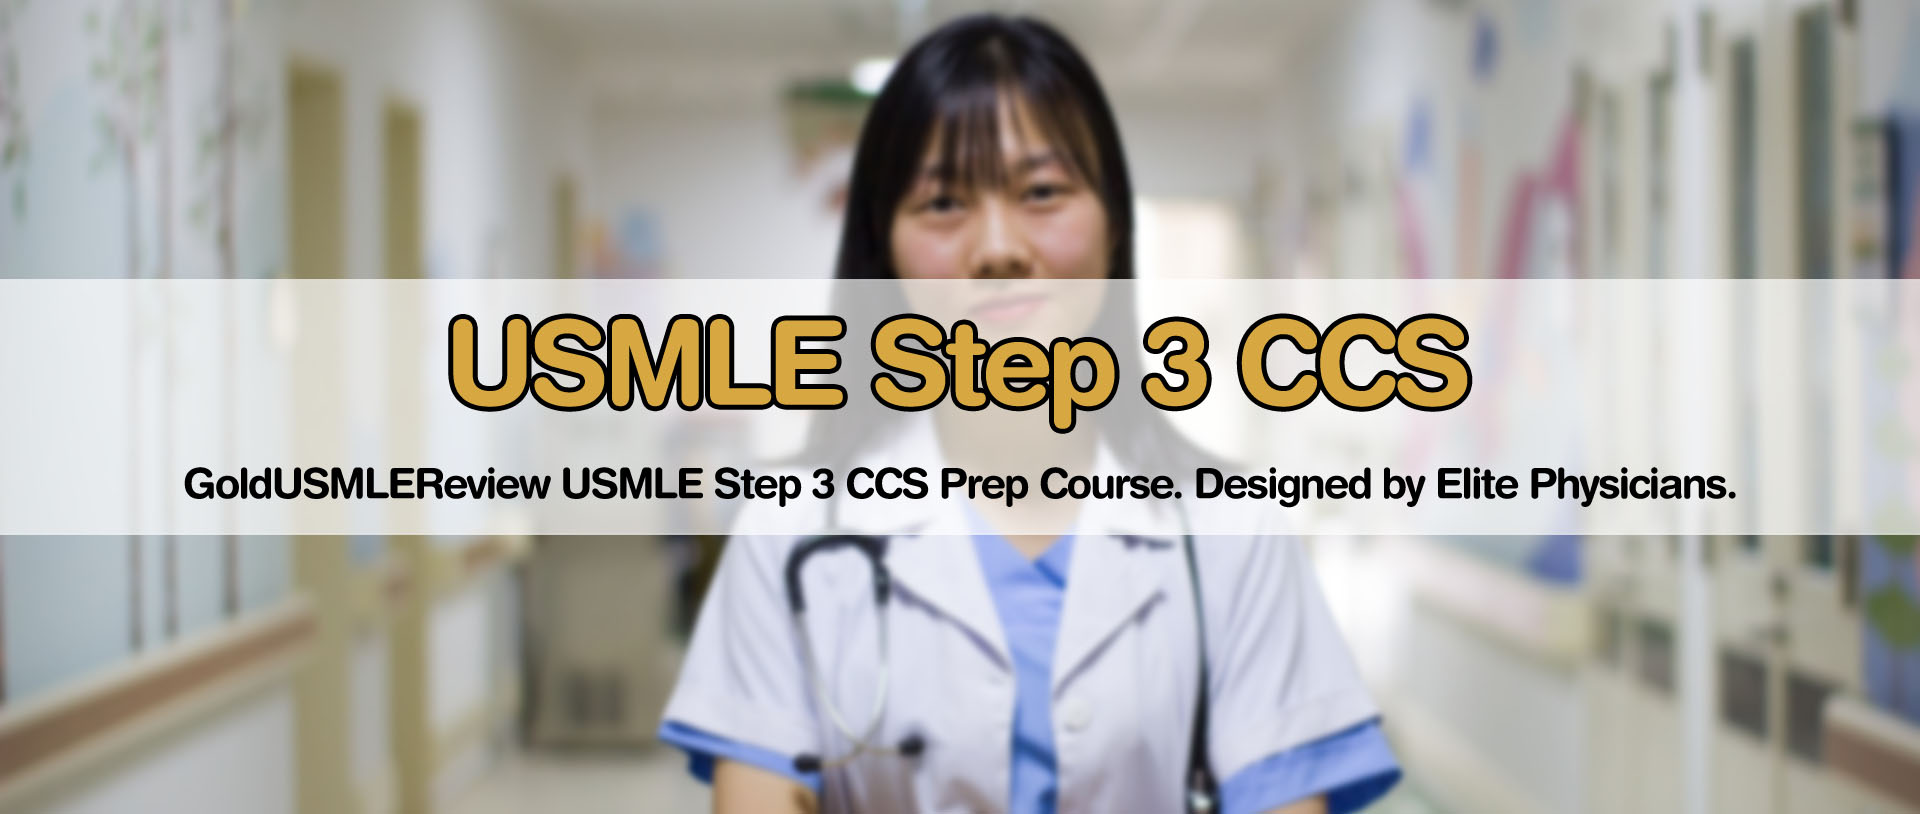 USMLE Step 3 CCS Prep Course